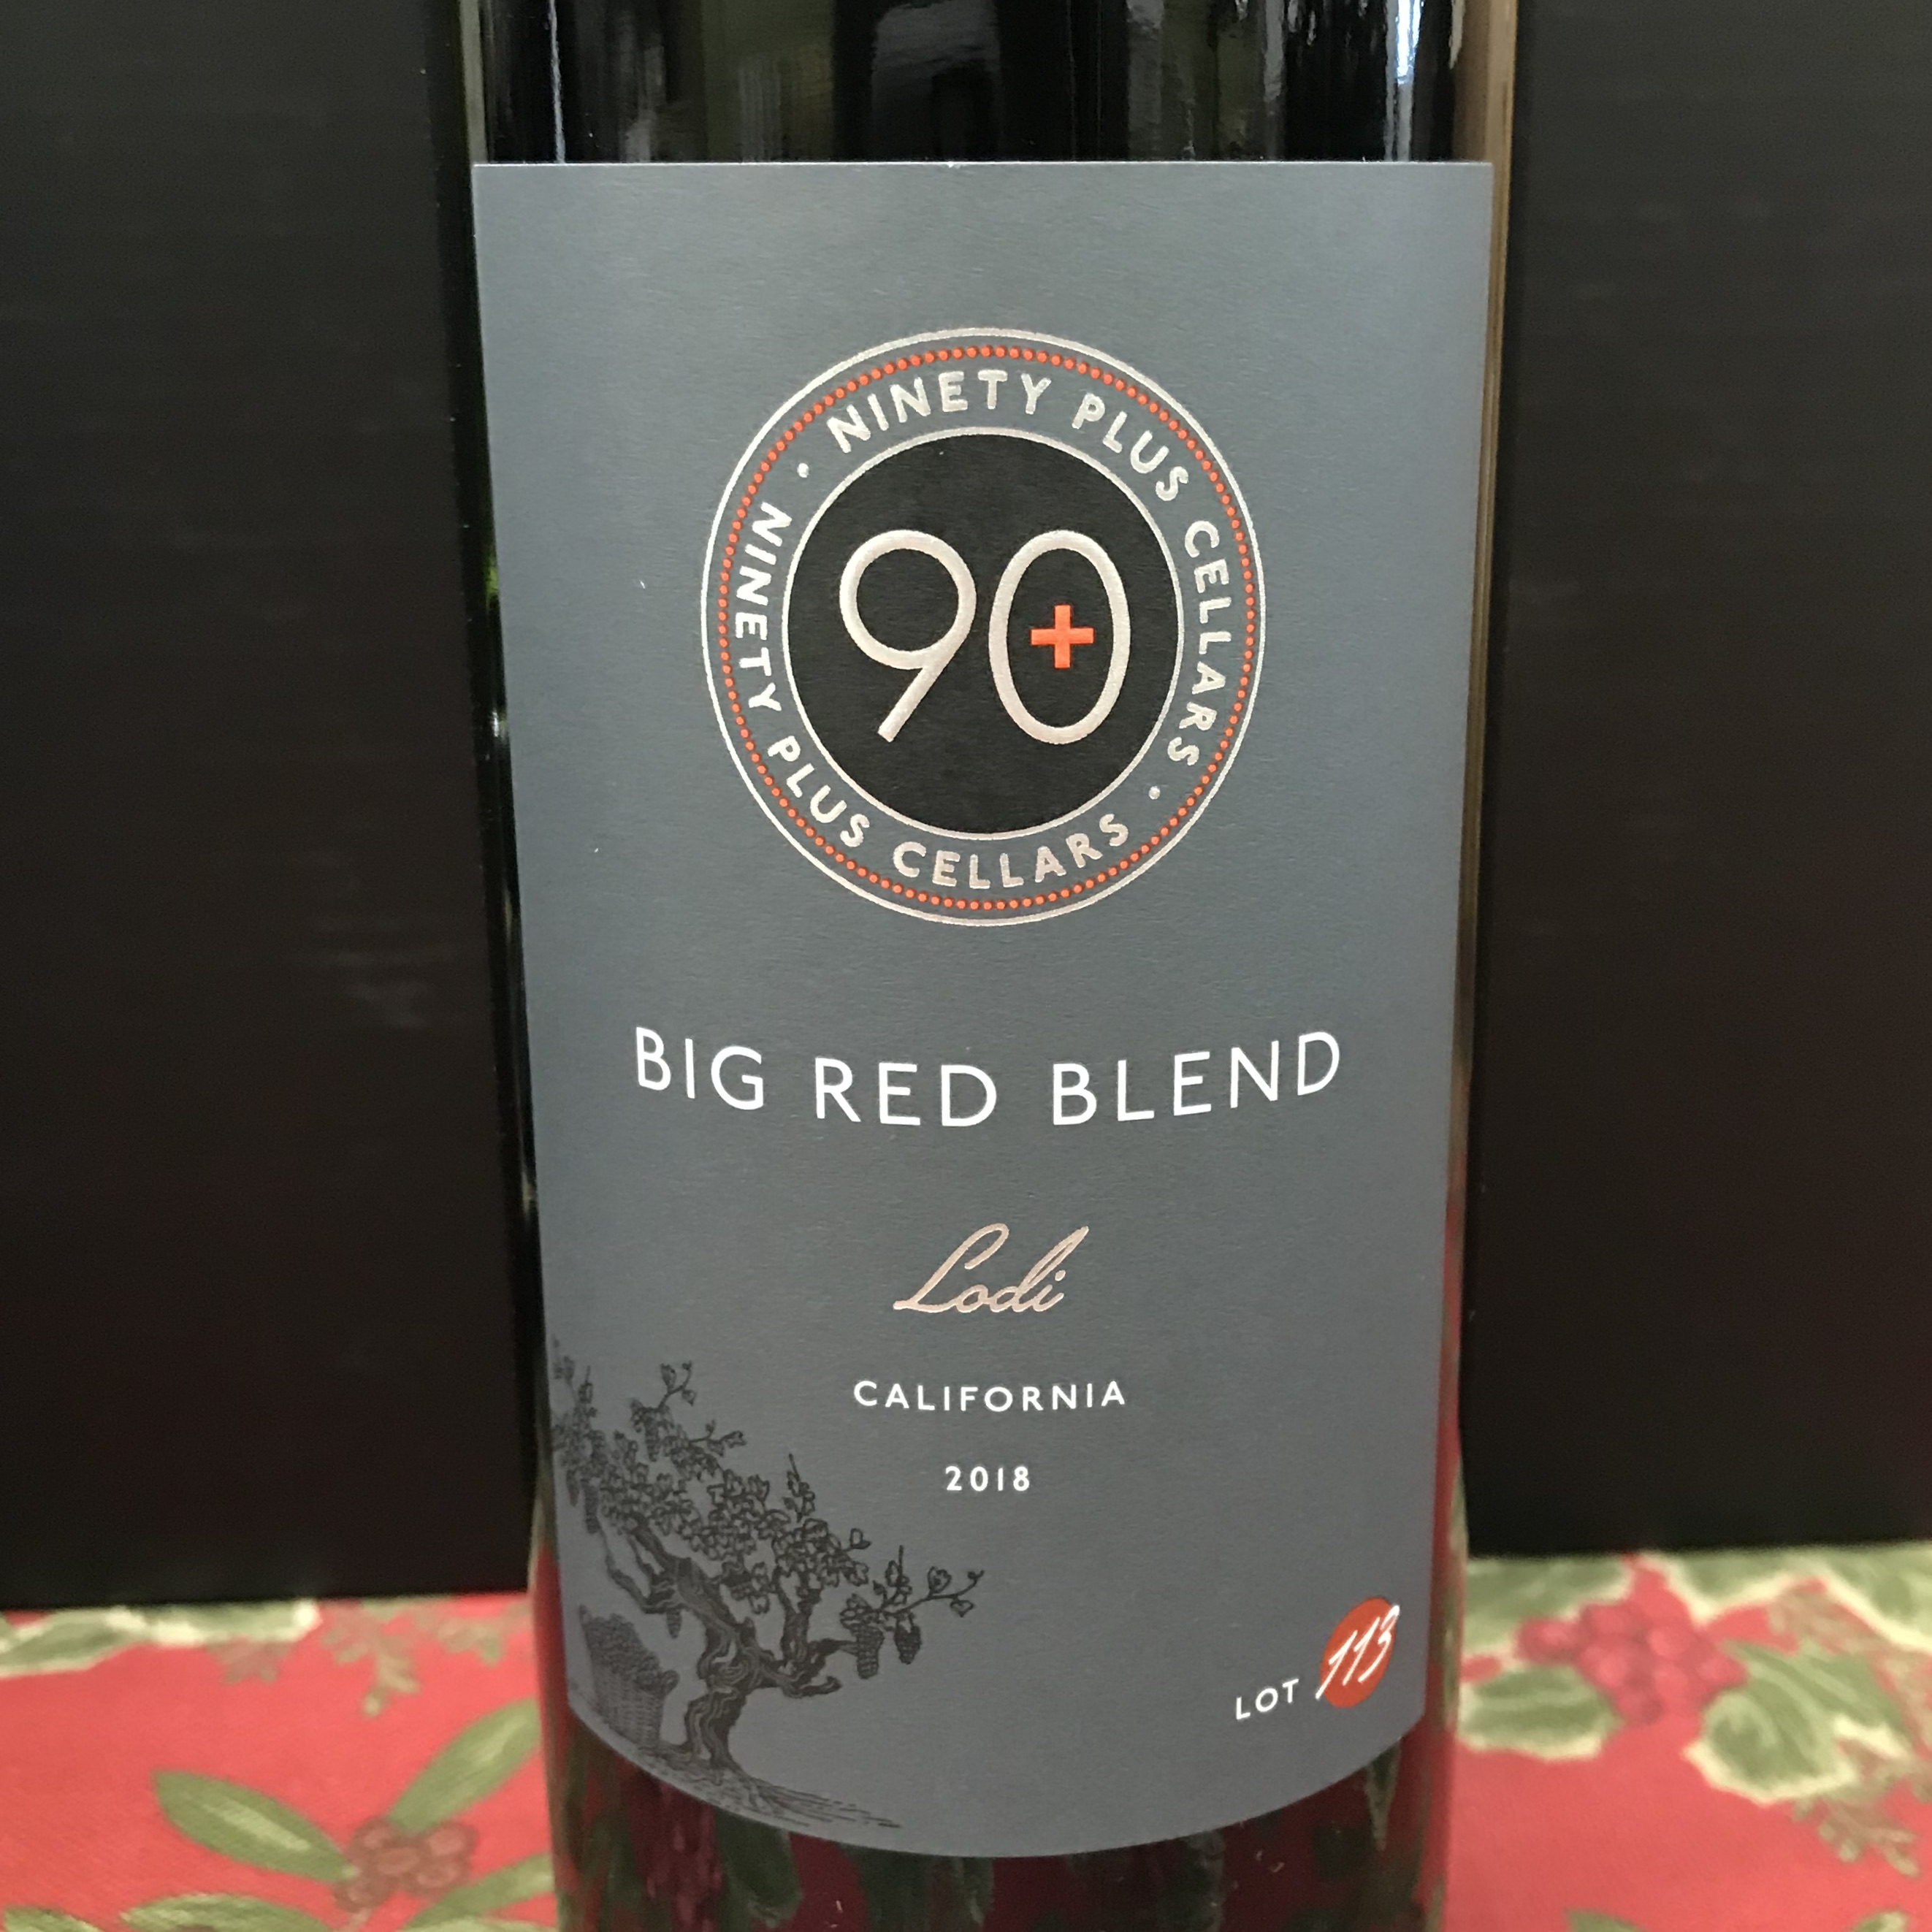 90+ Cellars Big Red Blend Lodi 2018